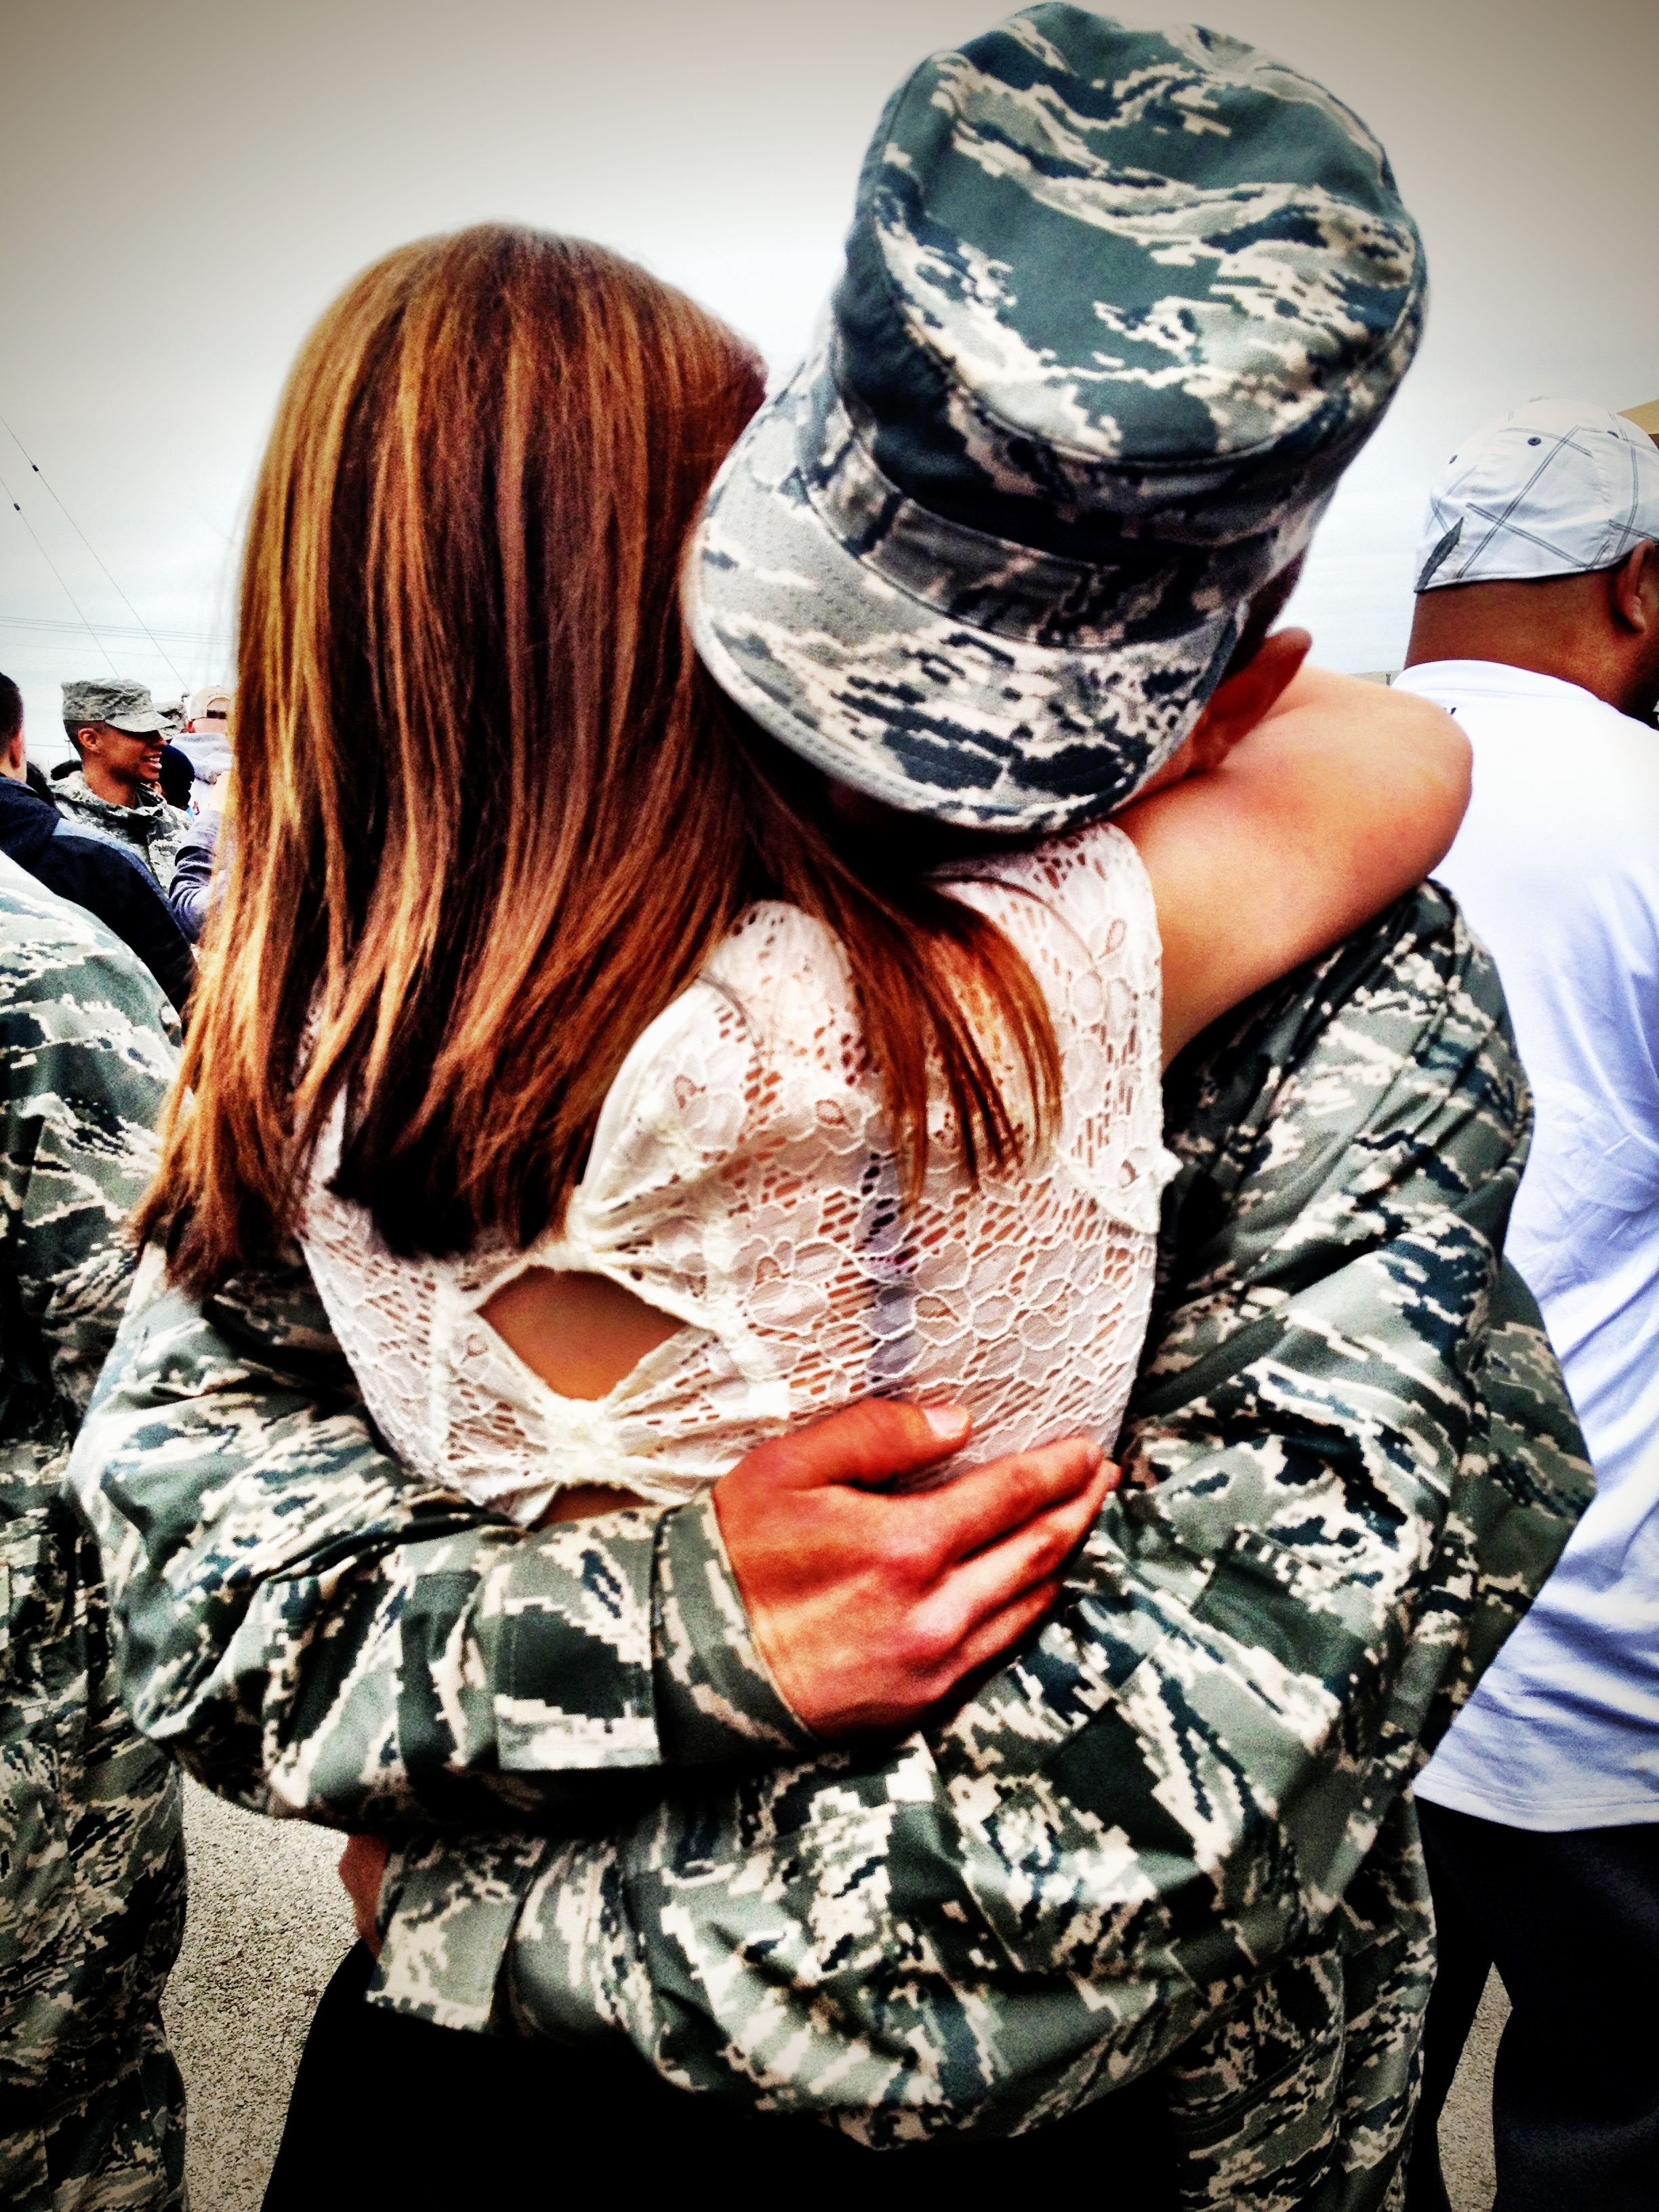 11 Best Free Military Dating Sites (2019)